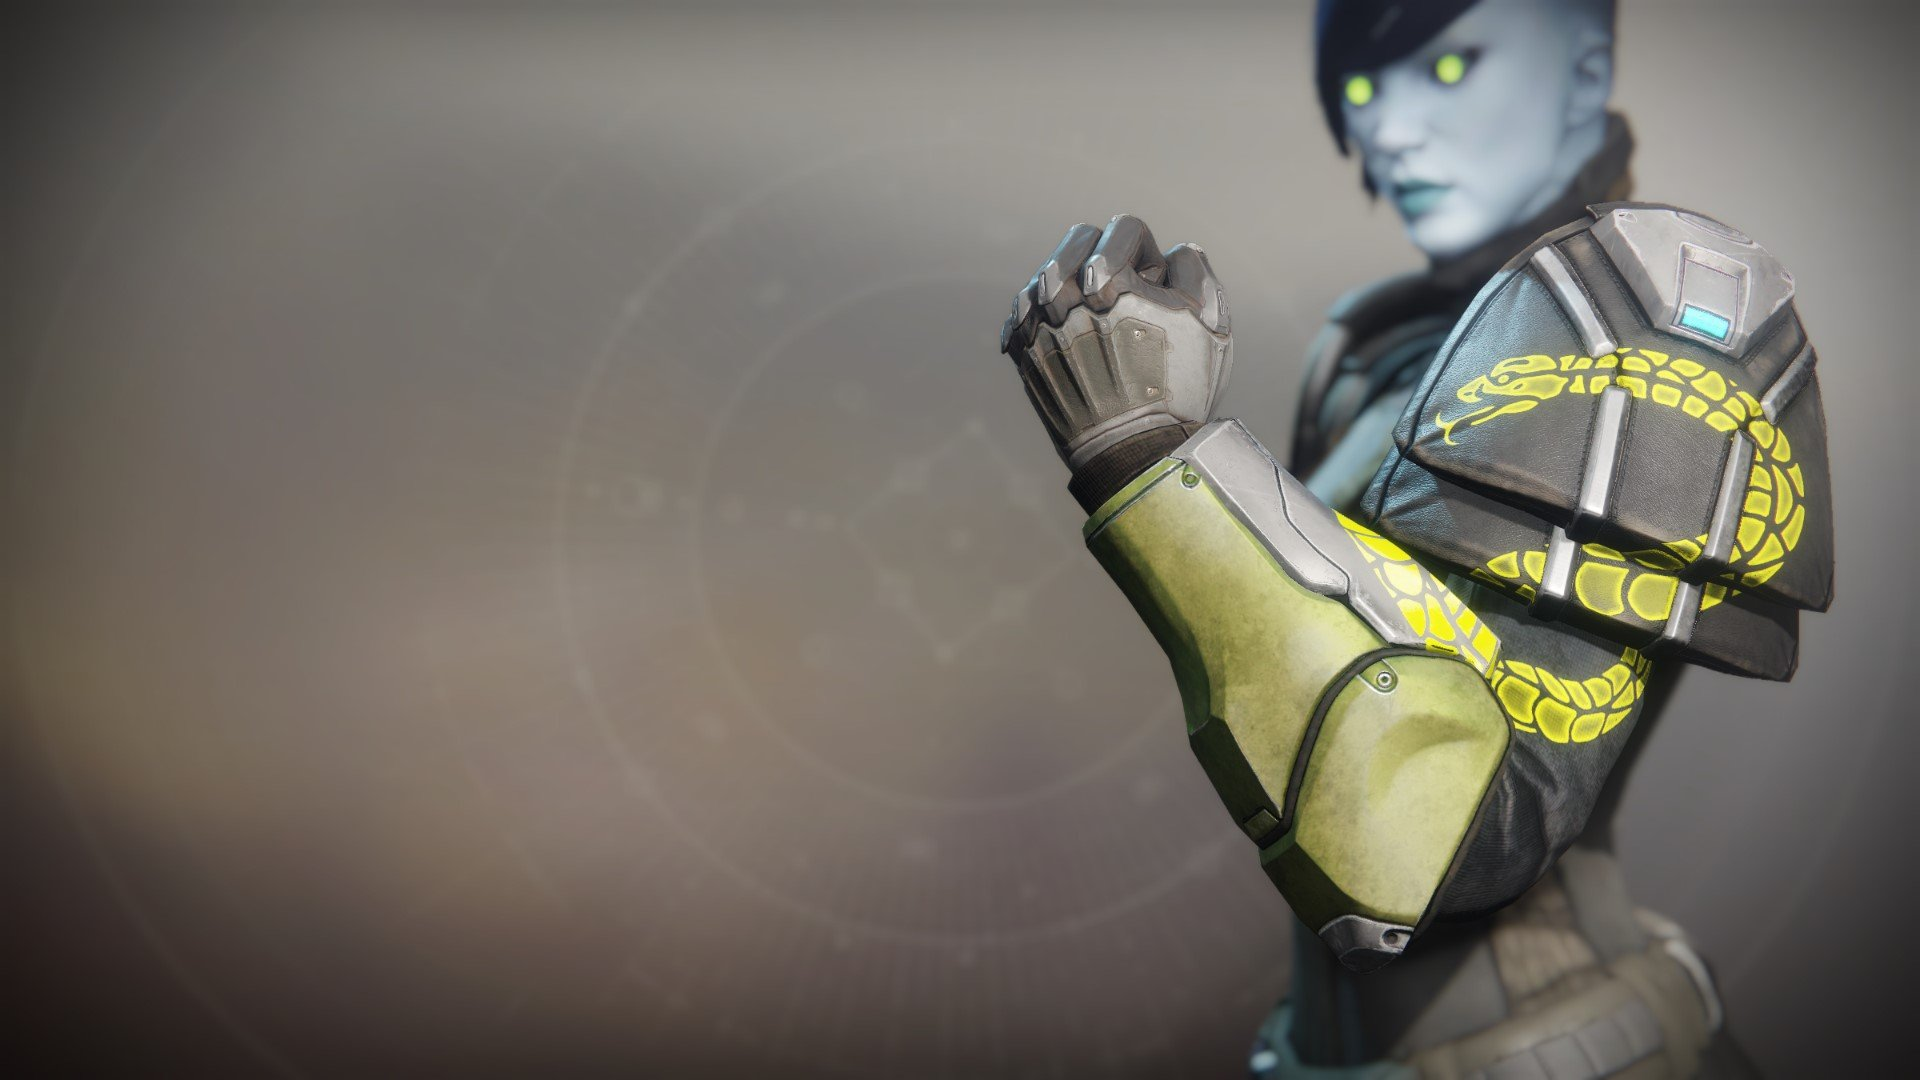 An in-game render of the Illicit Sentry Gauntlets.